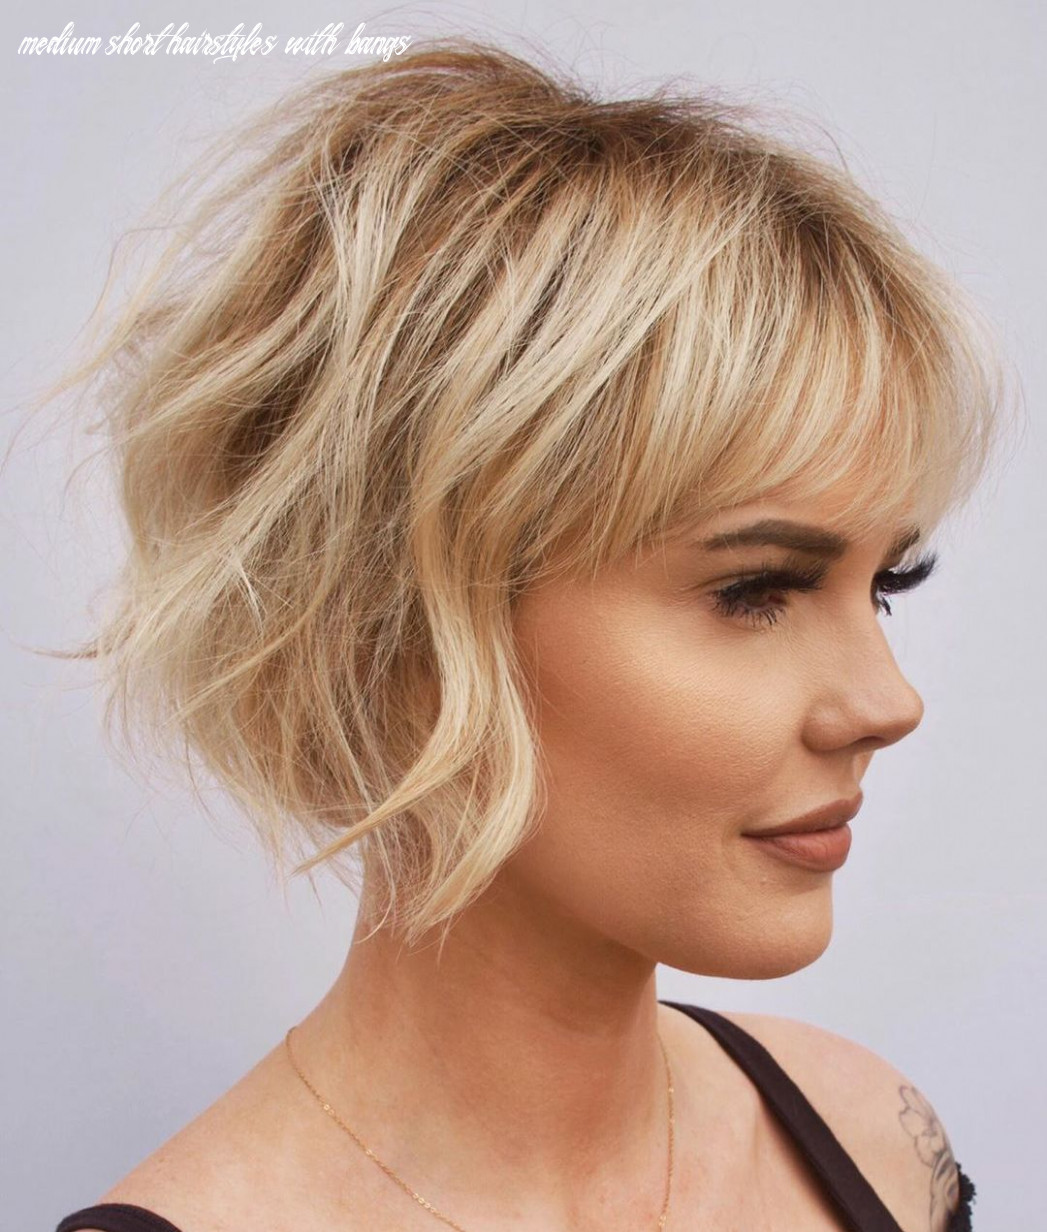 12 Newest Haircut Ideas and Haircut Trends for 12 - Hair Adviser